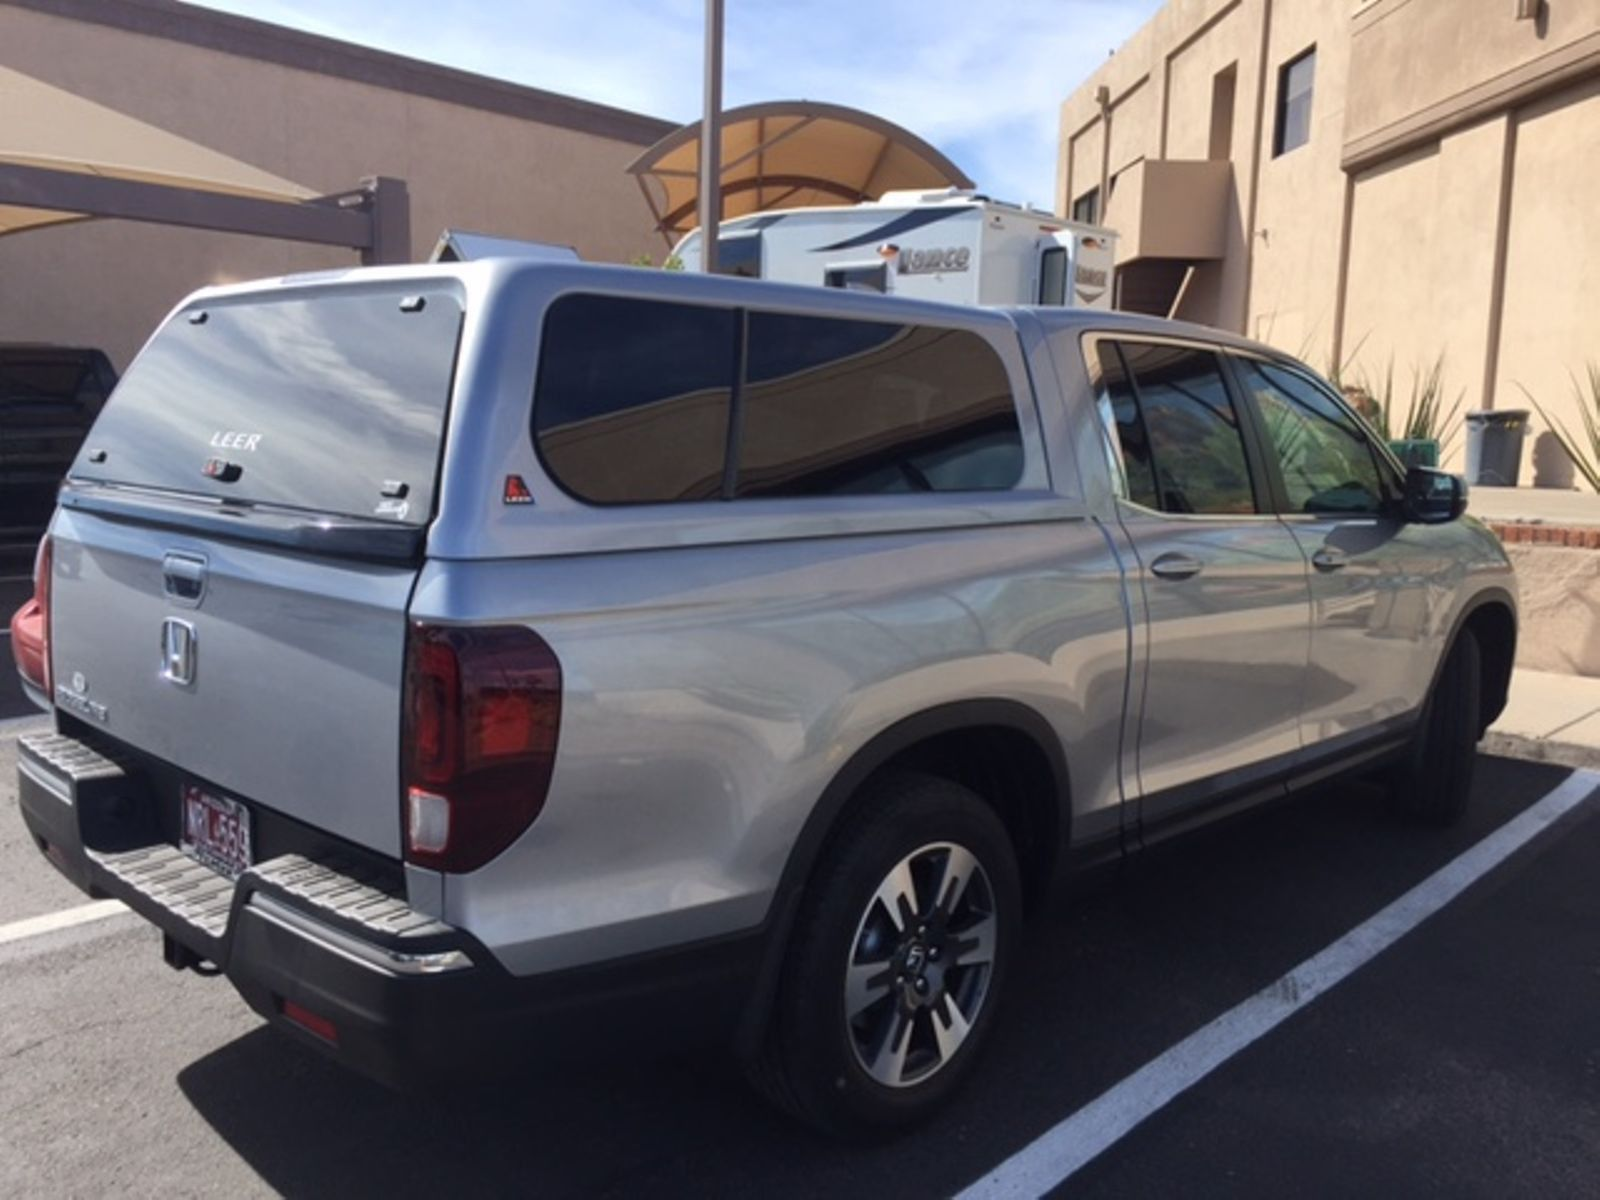 Honda Ridgeline Camper Shell 2019 Specs and Features